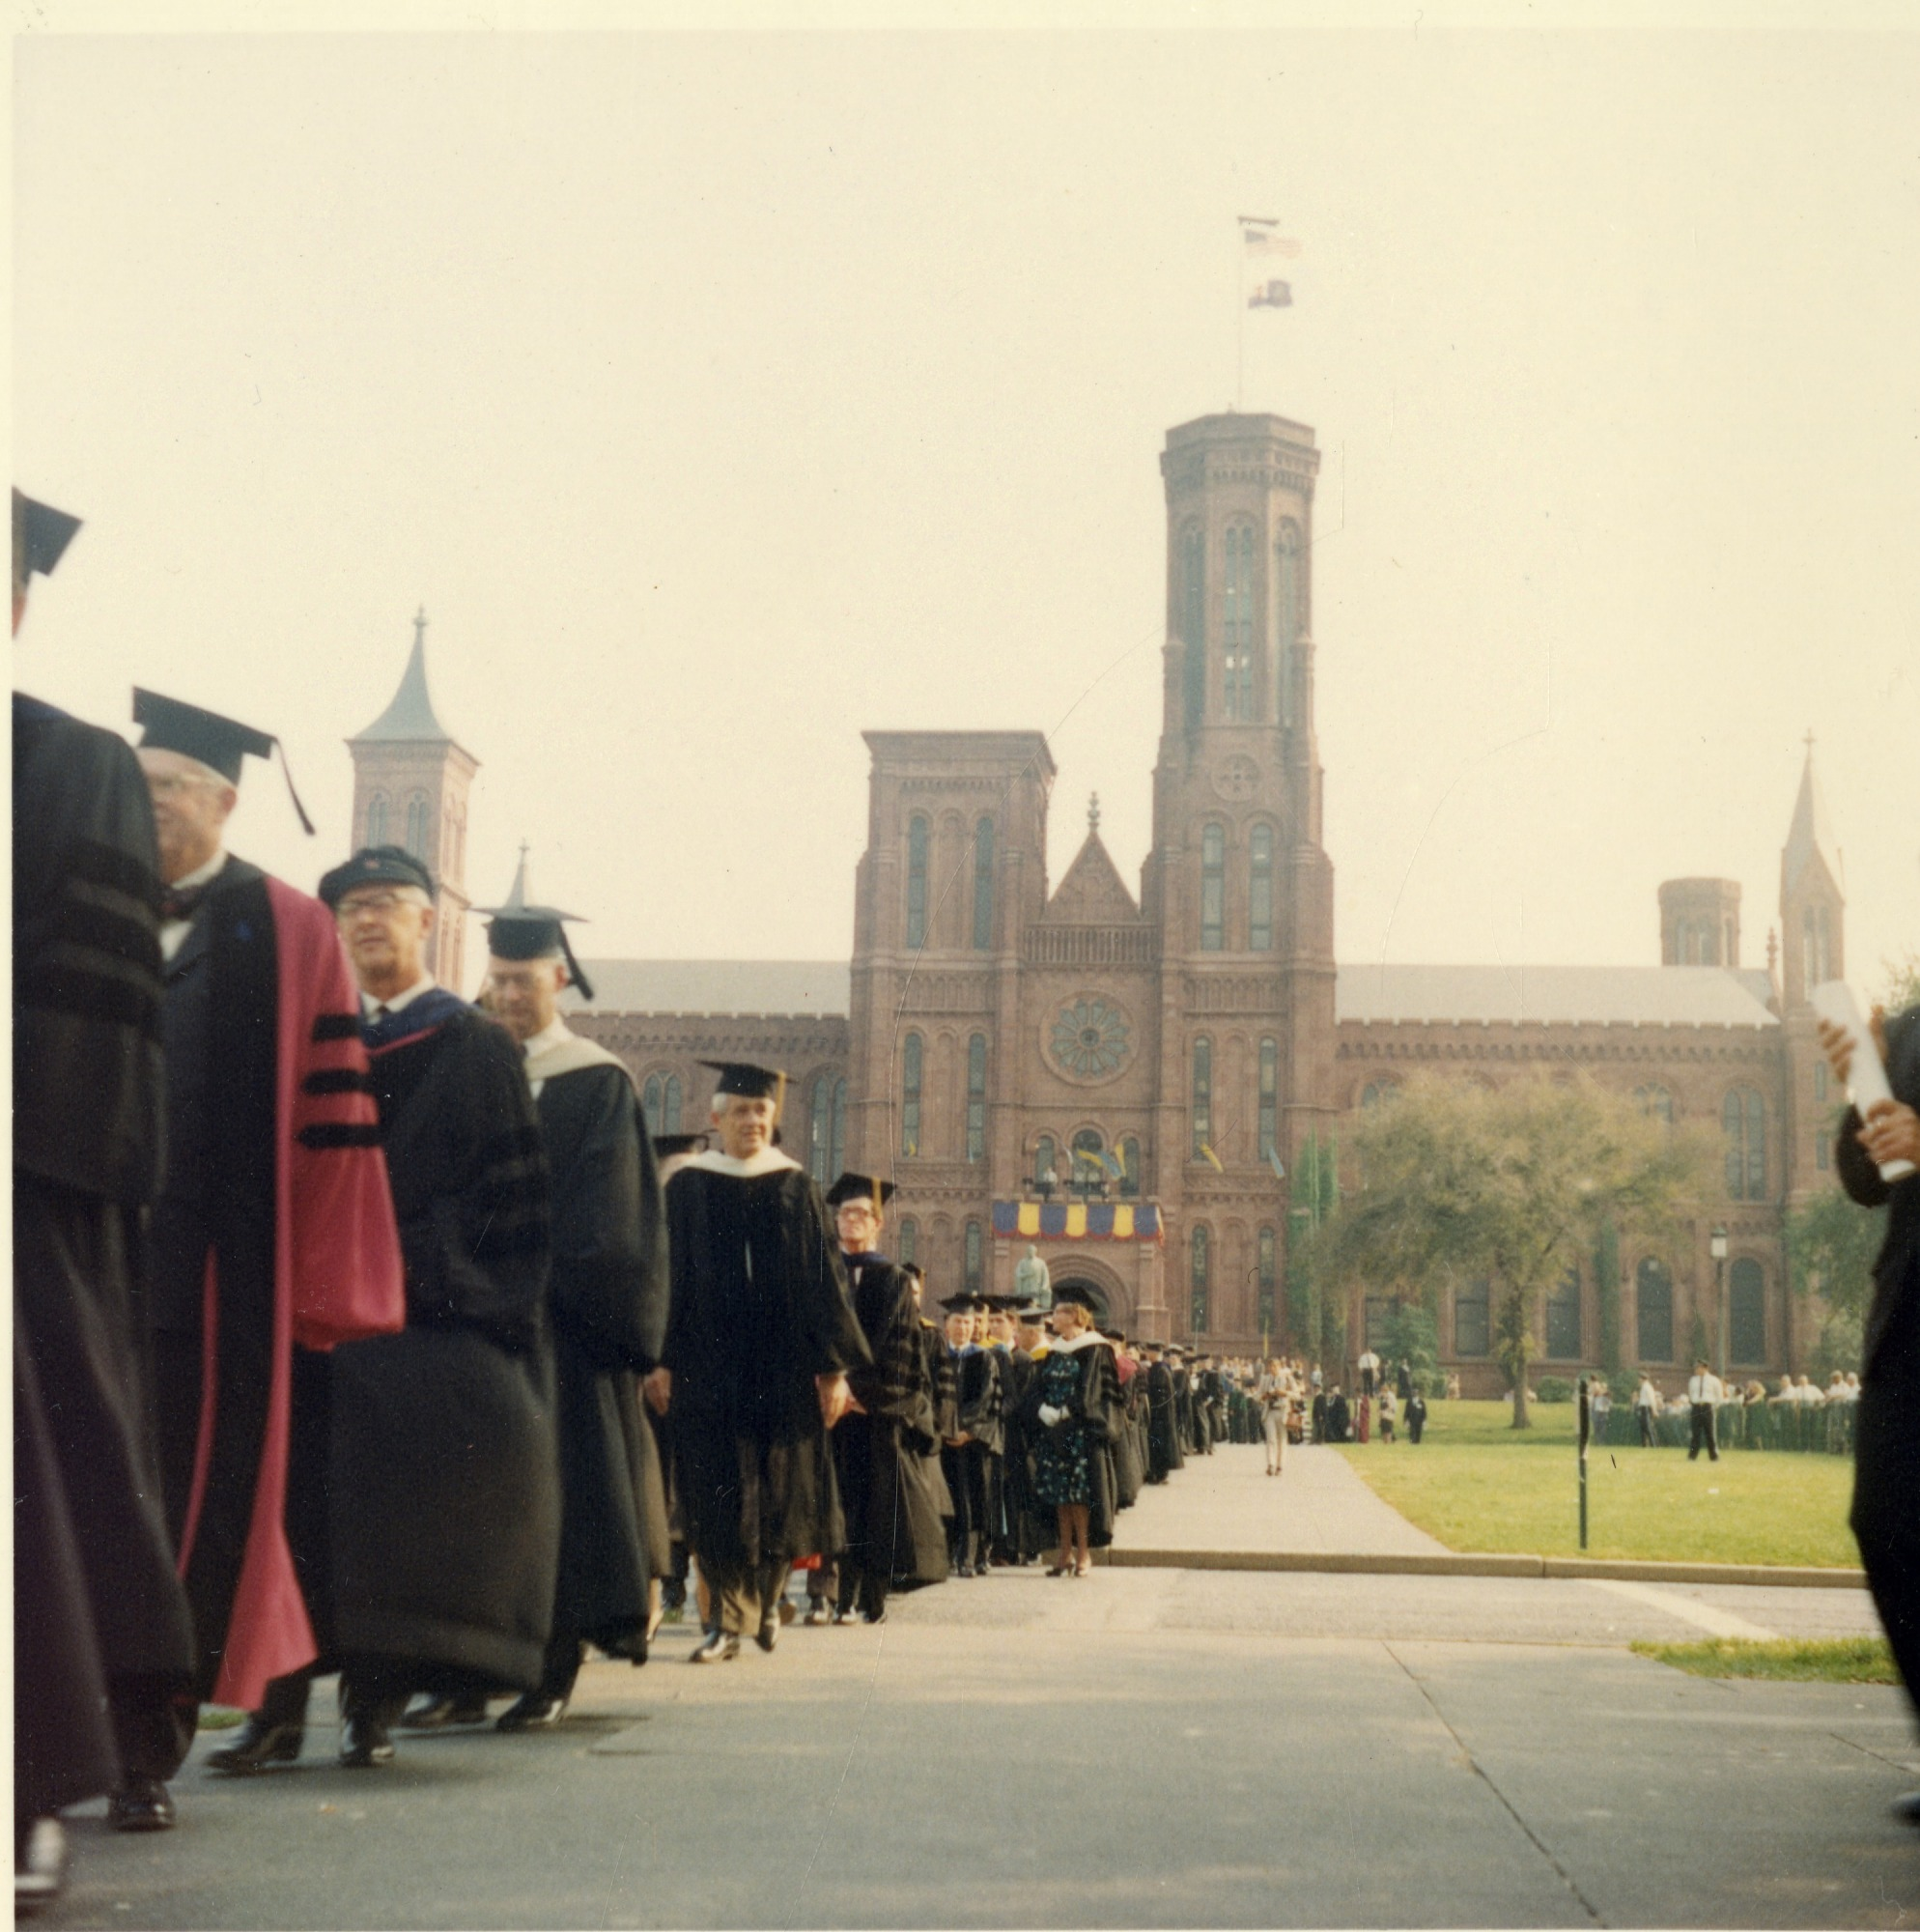 James Smithson Bicentennial Celebration Procession: Smithsonian Castle Visible in Background